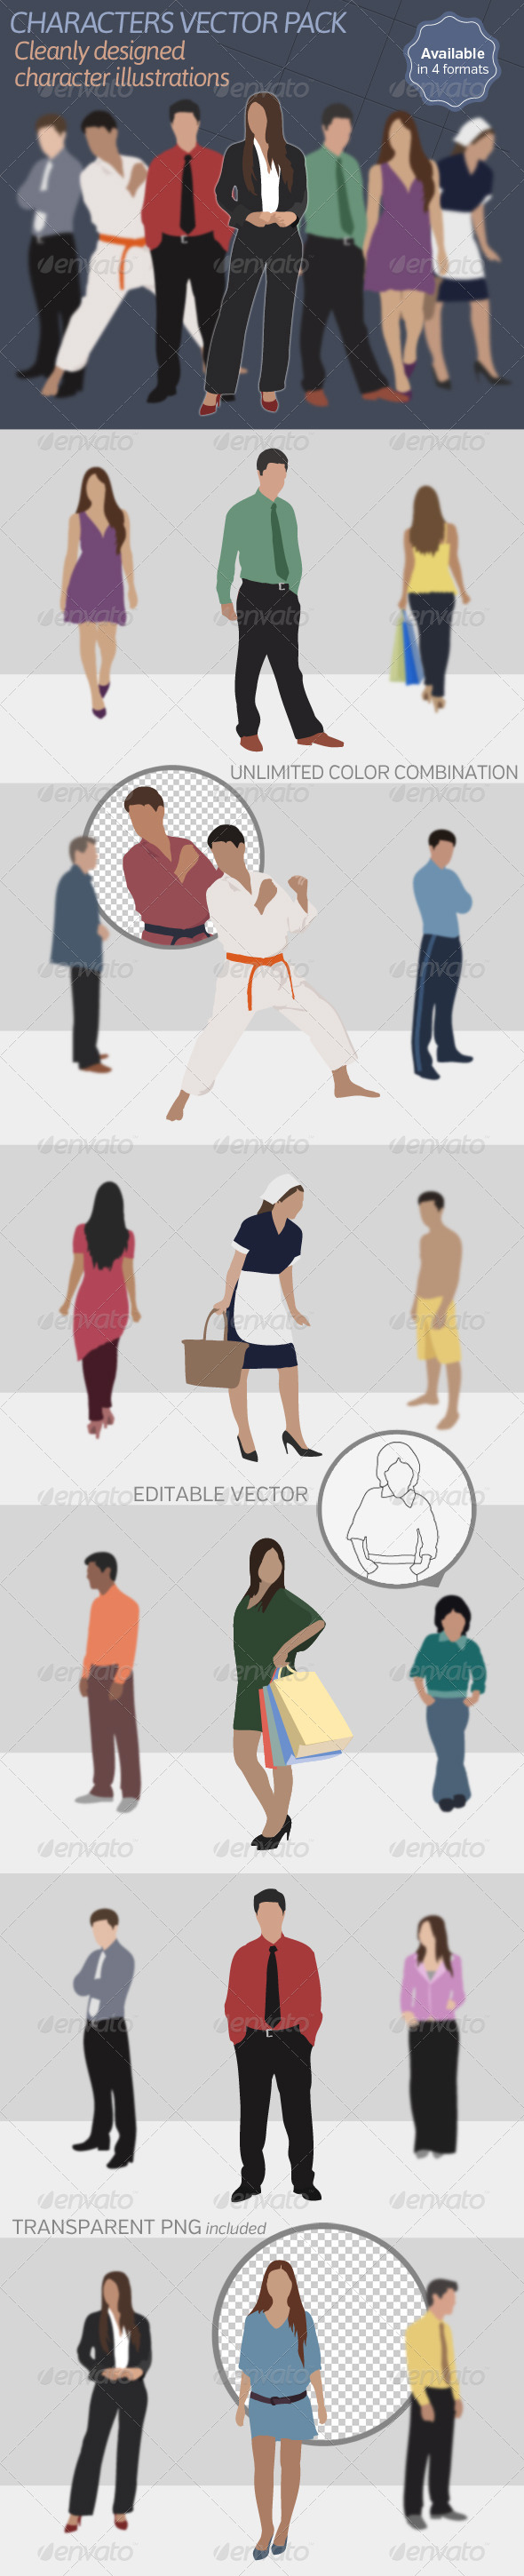 Characters Vector Pack - People Characters